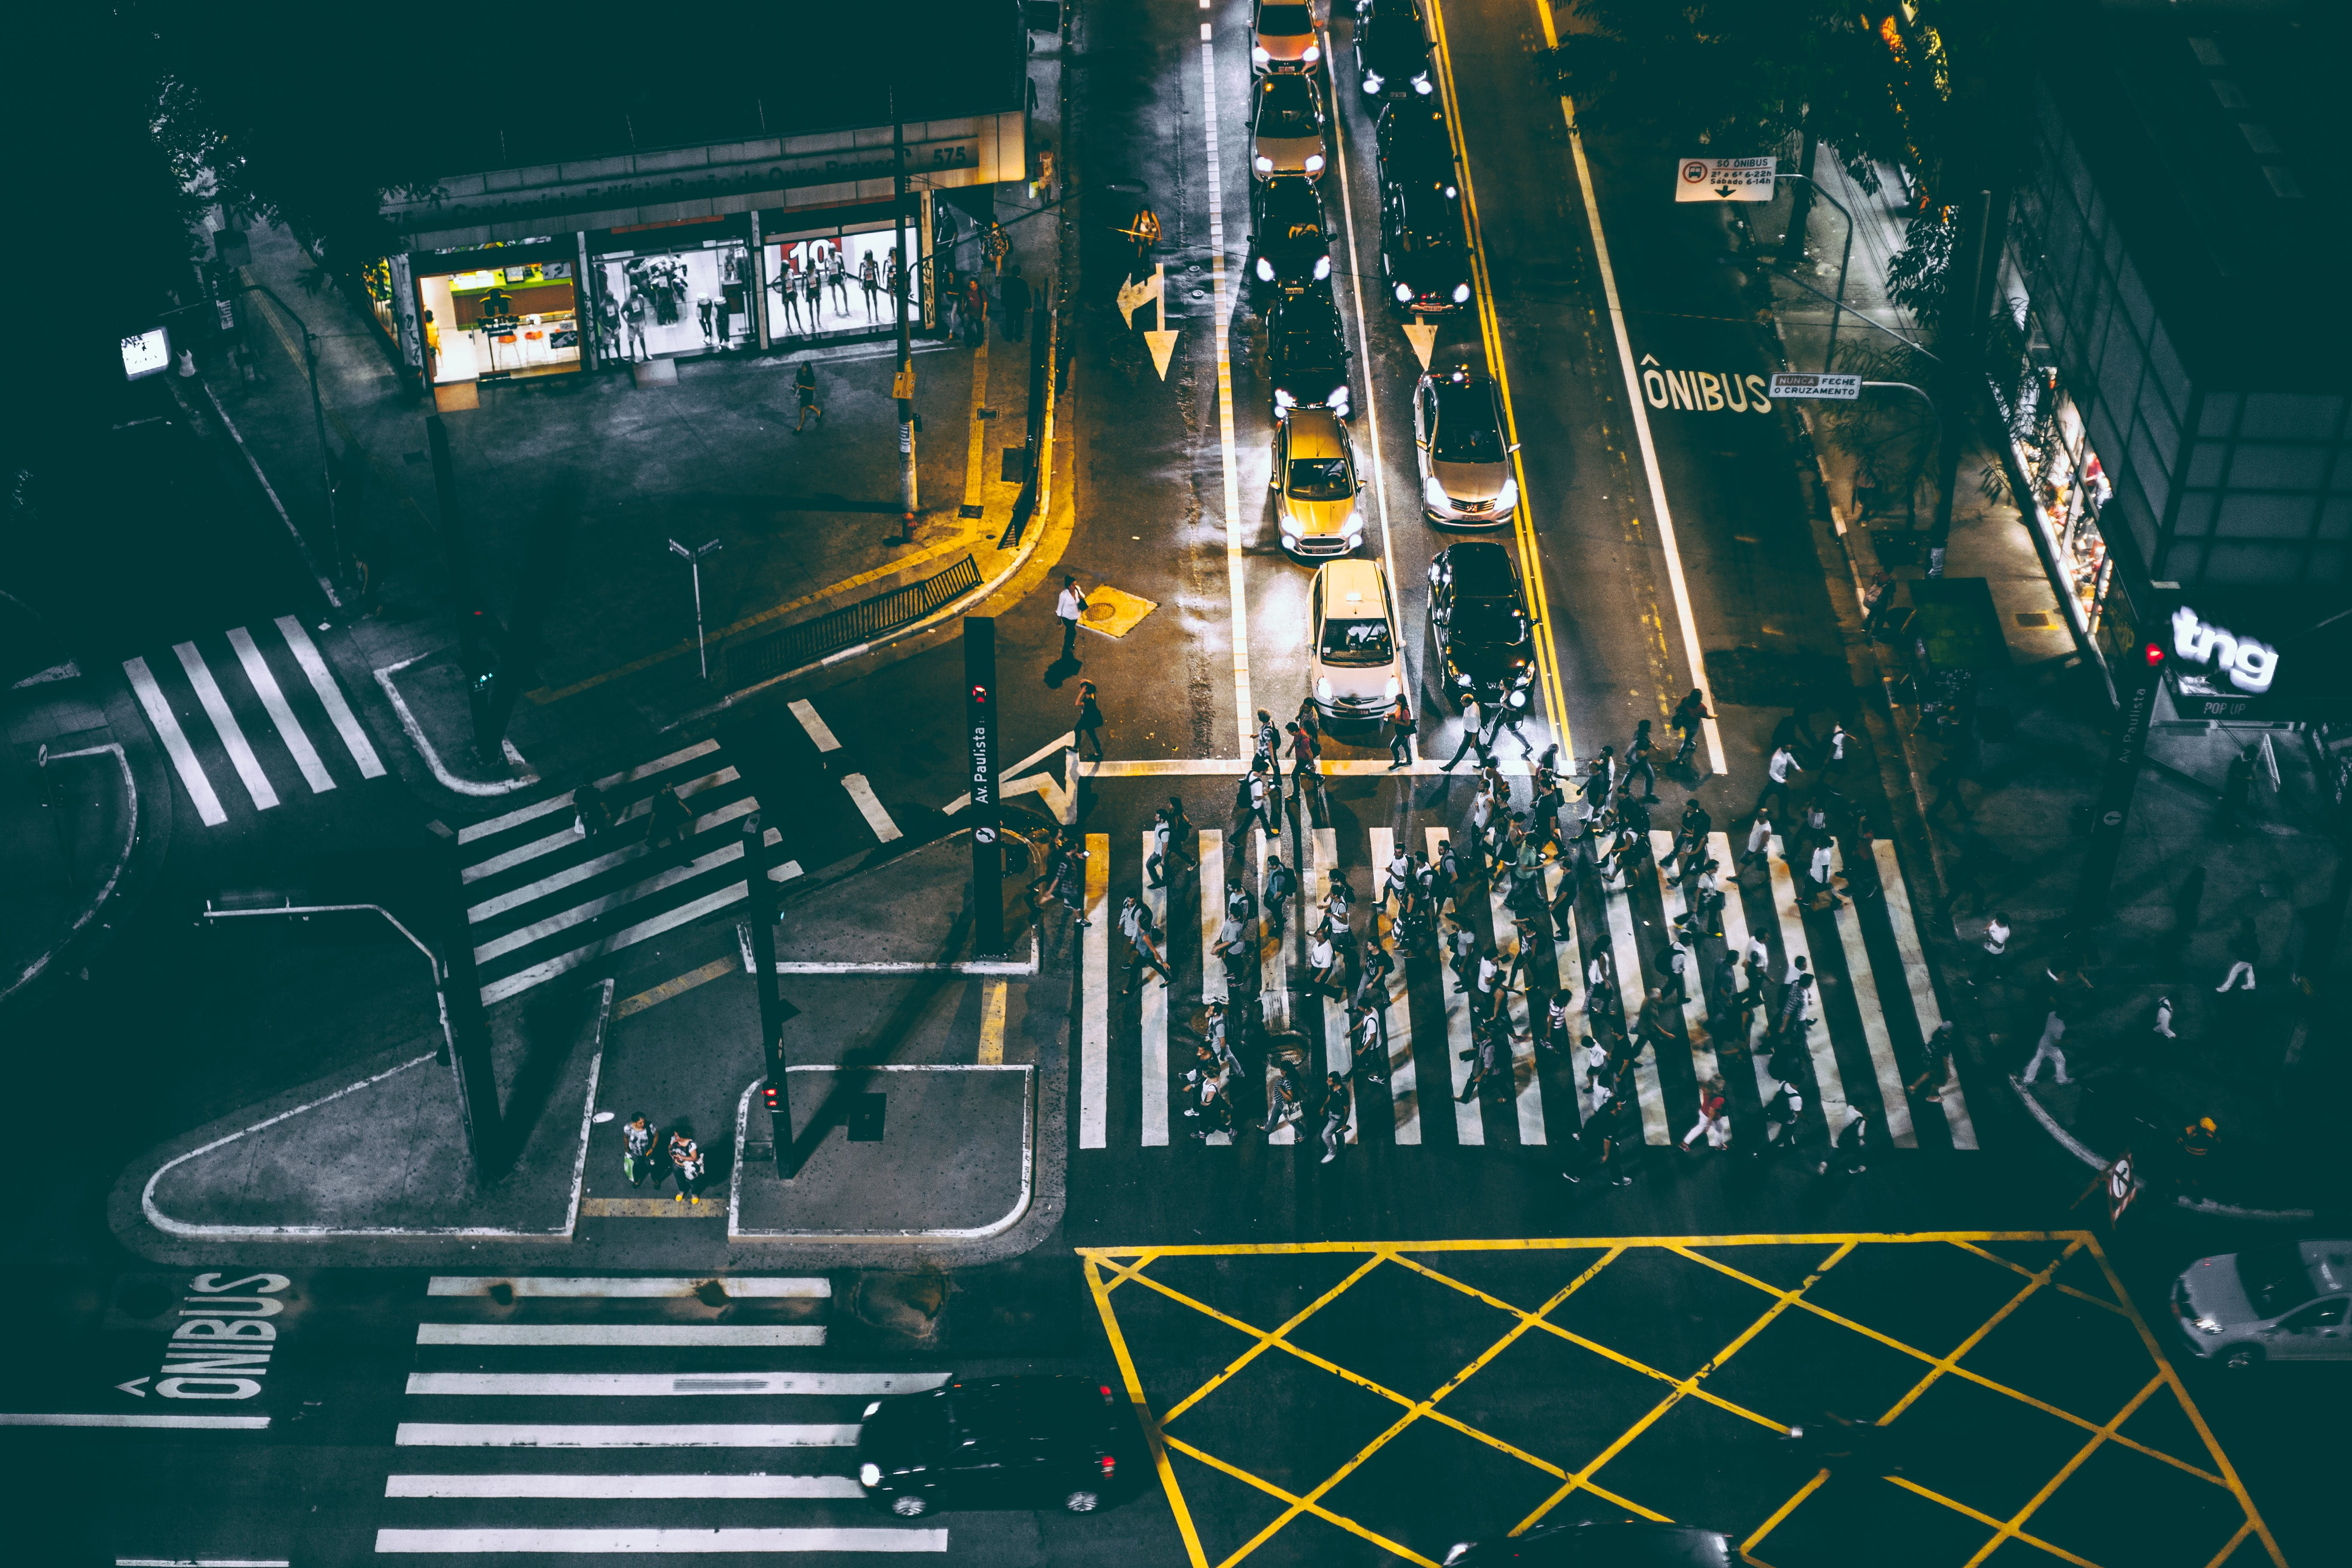 Aerial View of Bunch of People Walking on White Pedestrian Lane during Night